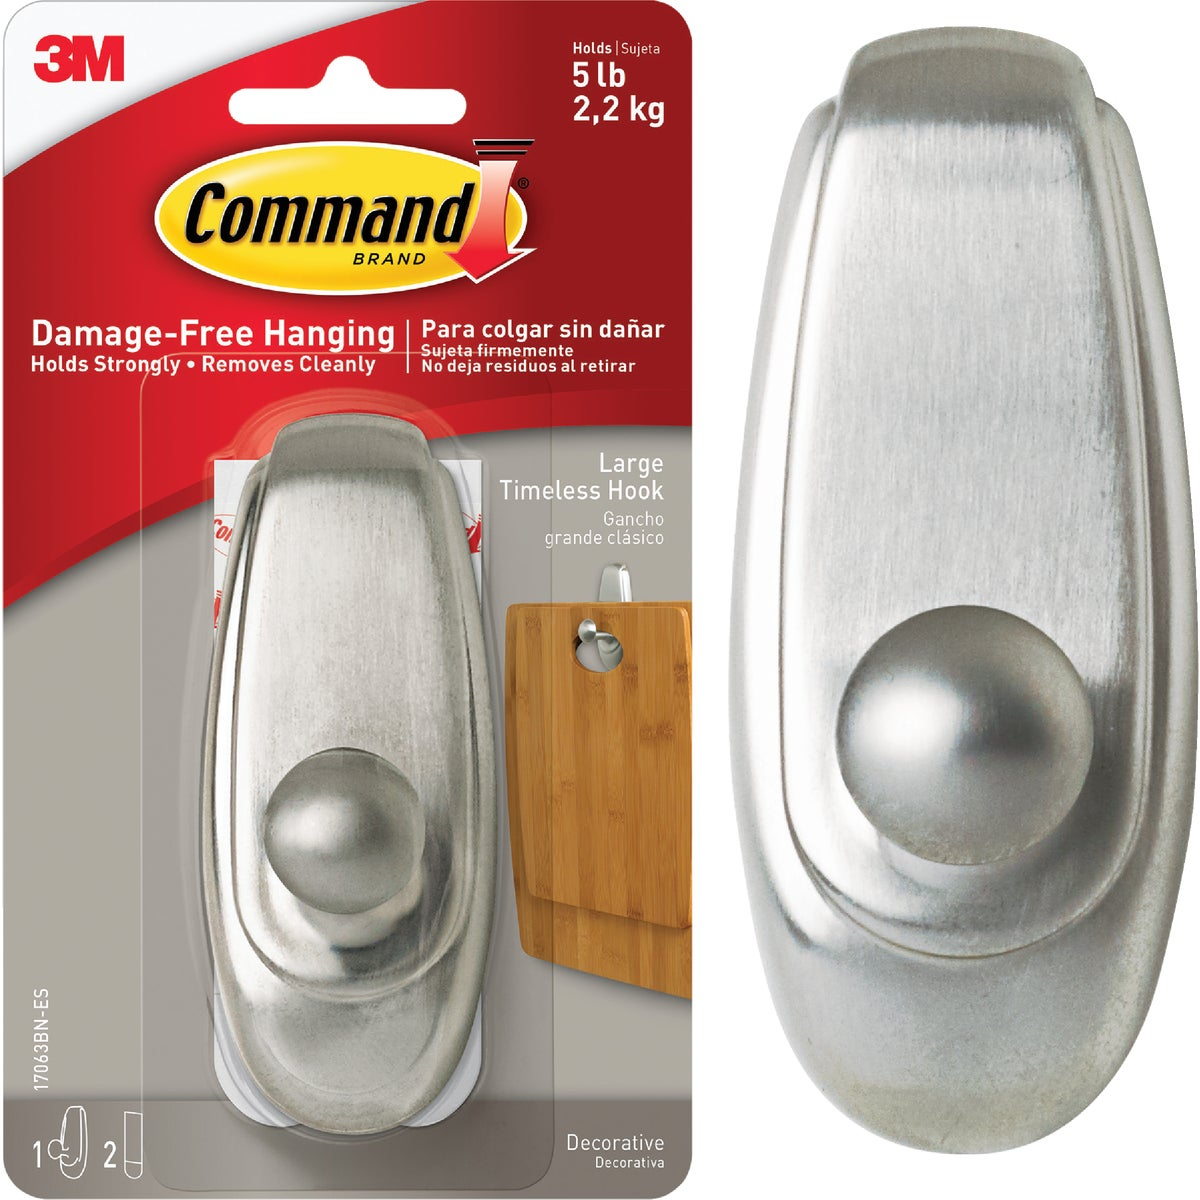 COMMAND LRG NICKEL HOOK - 17063BN by 3m Co